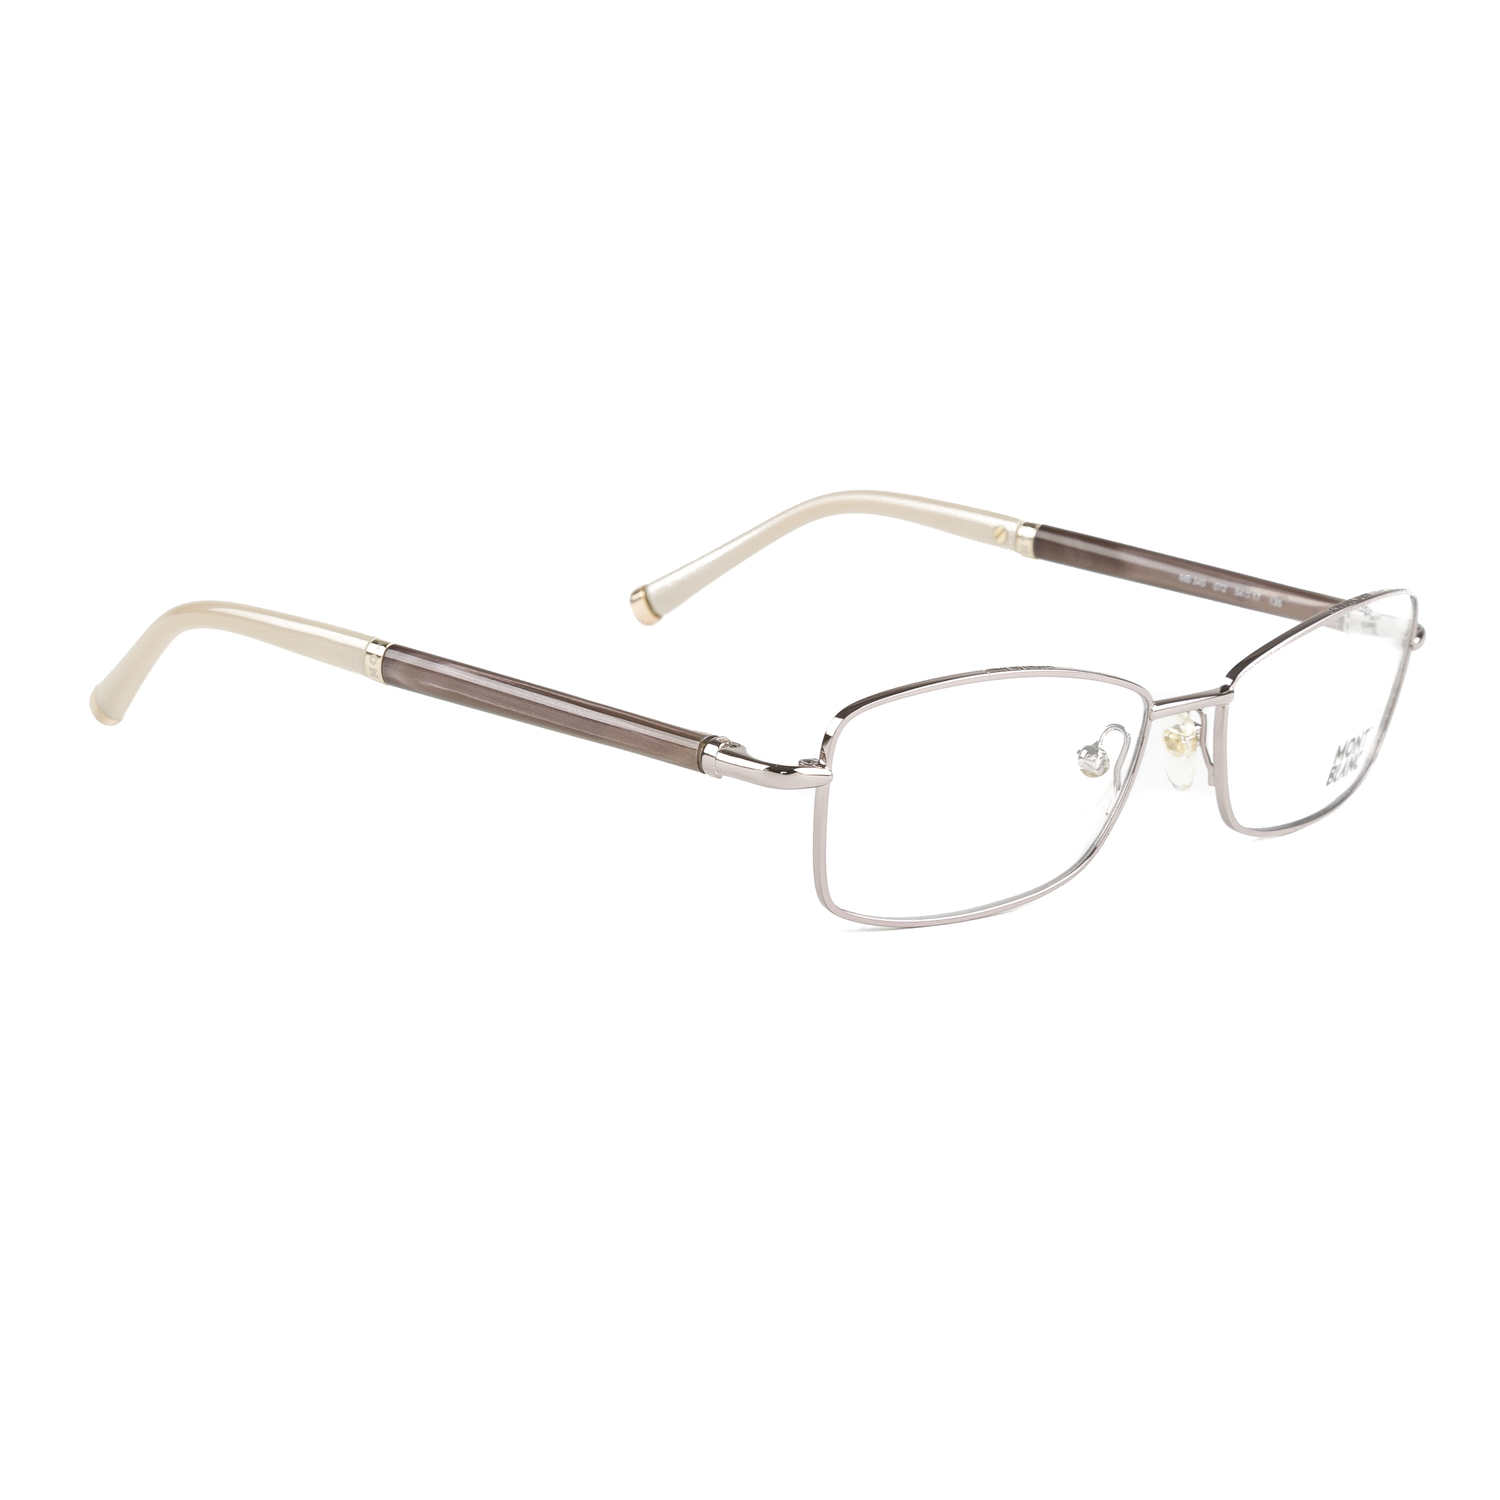 Montblanc Rectangular Eyeglass Frames 54mm MB345 NEW eBay